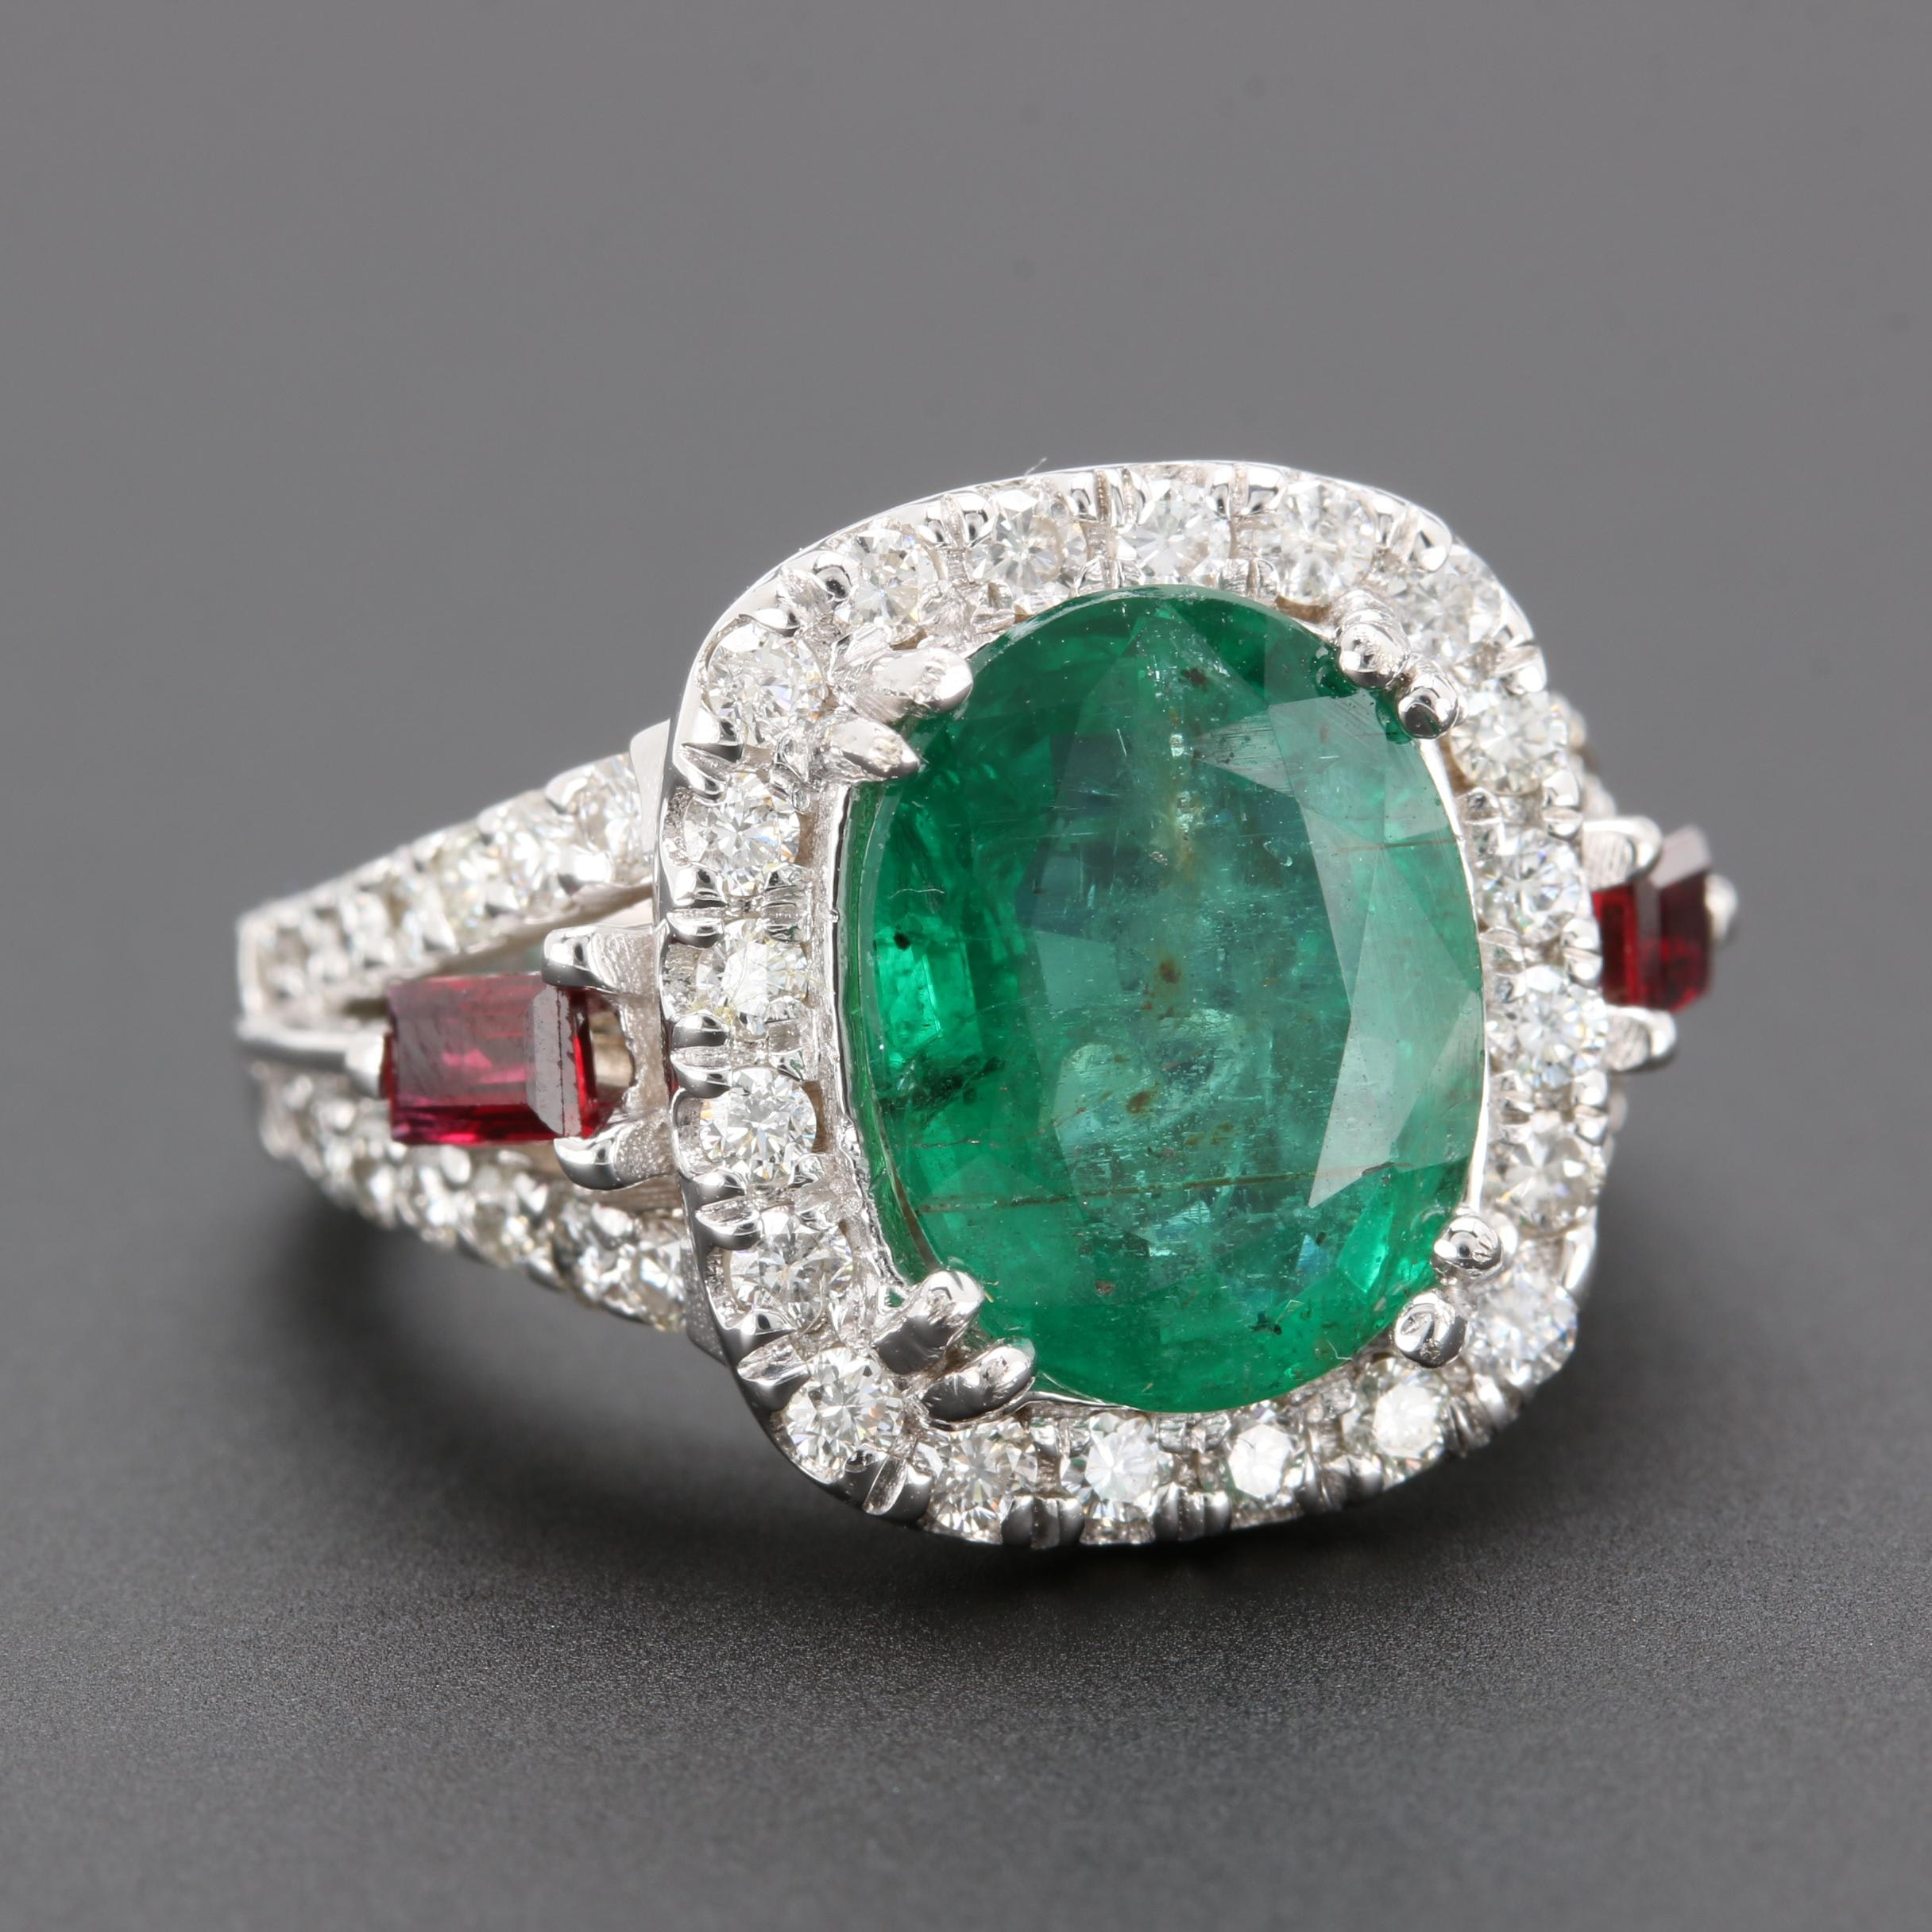 14K White Gold 2.86 CT Emerald, Ruby, and 1.96 CTW Diamond Ring